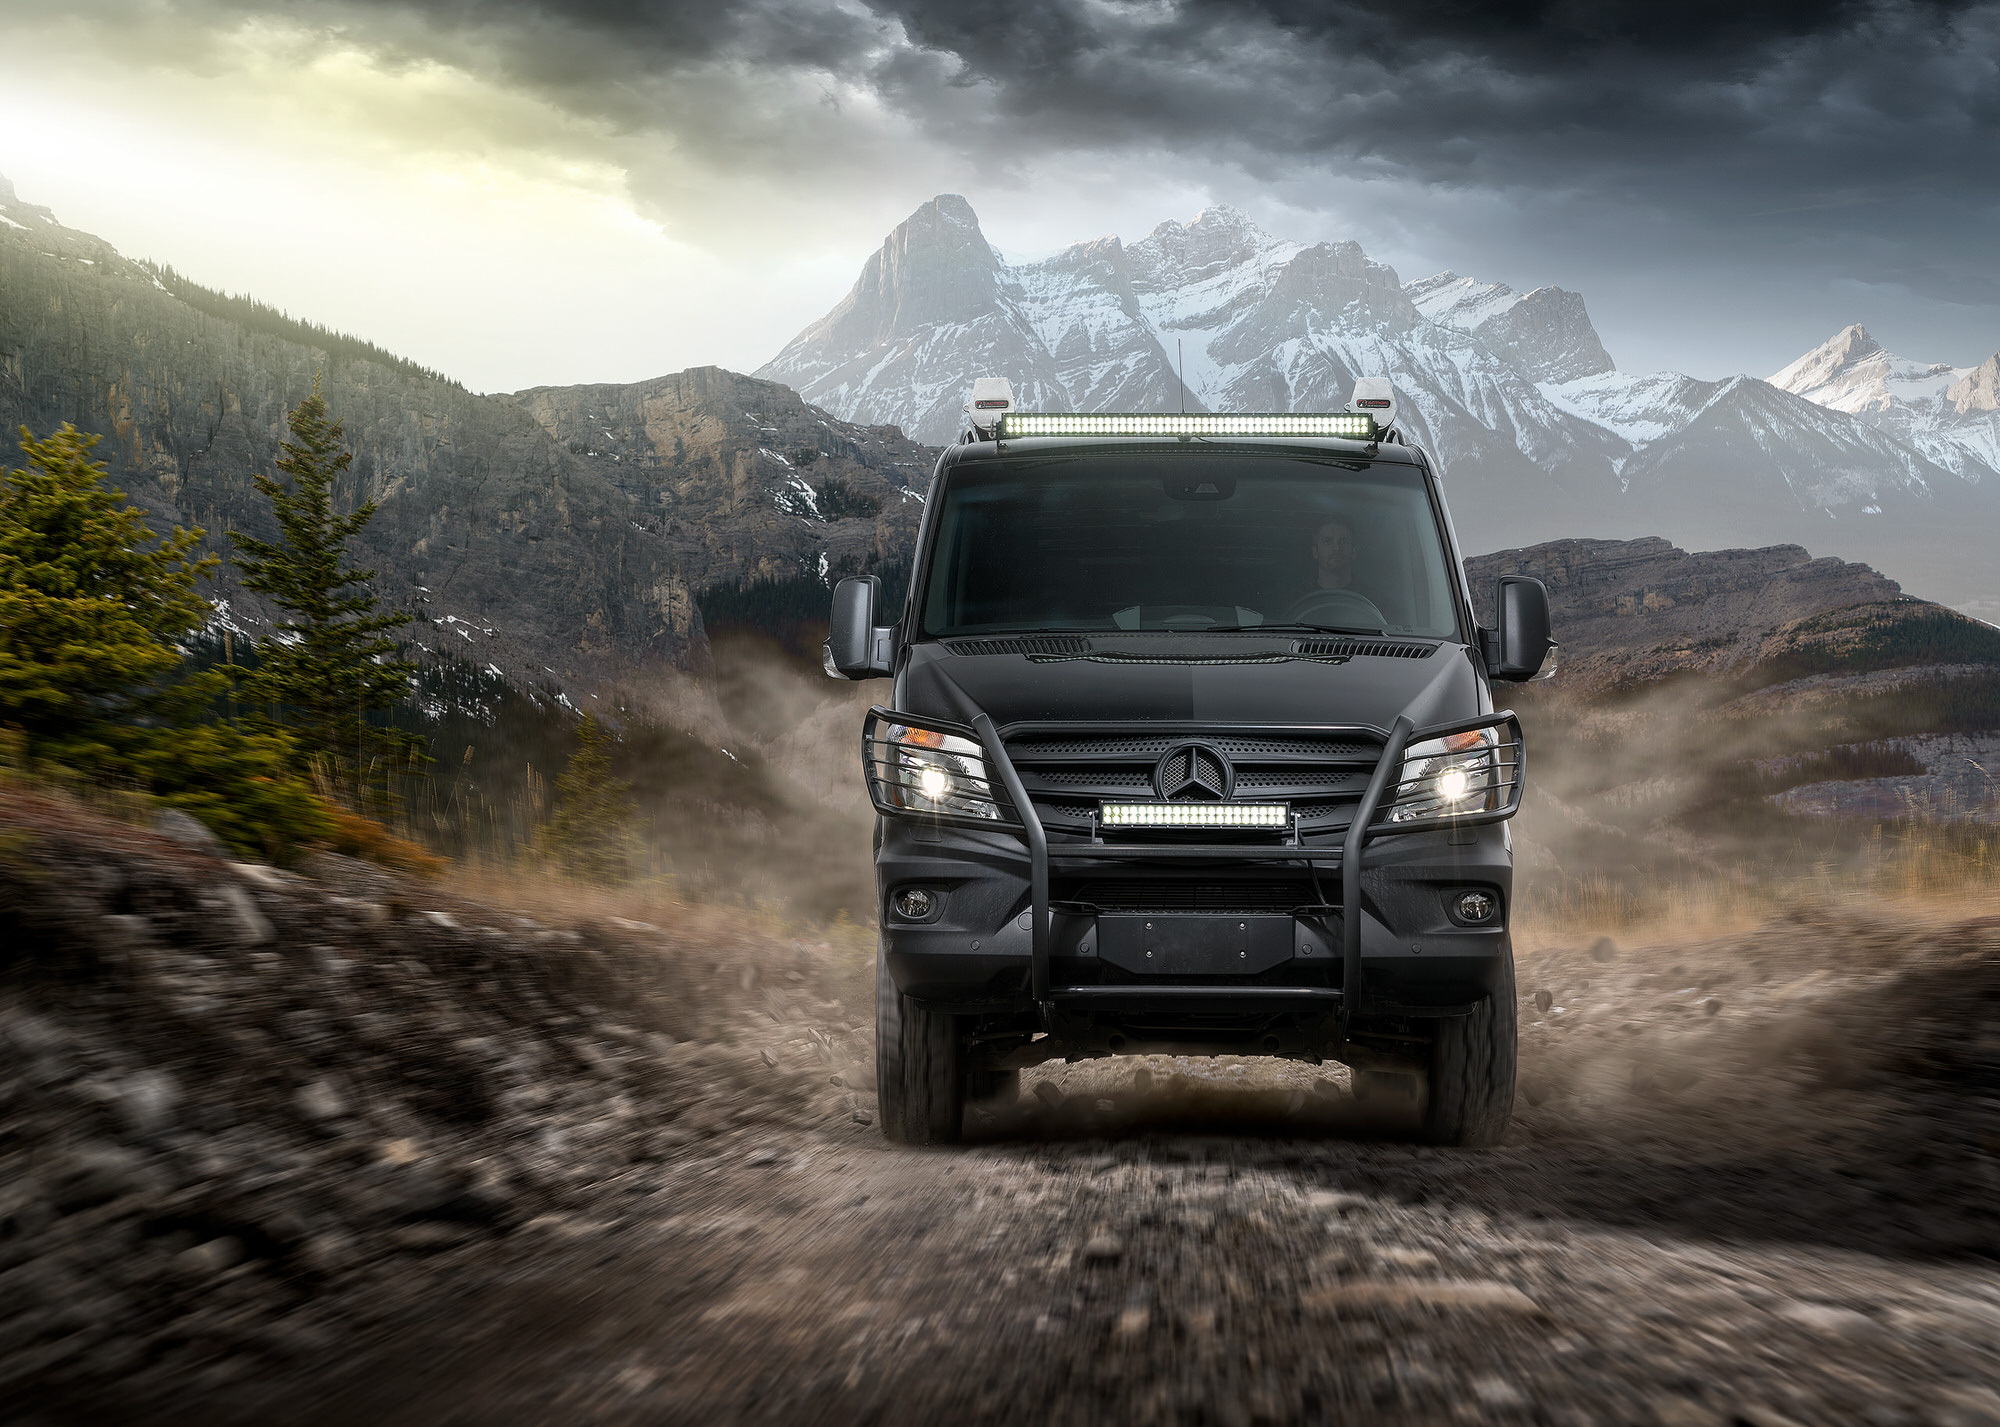 Mercedes-Benz Sprinter Van 4x4 commercial photography in Banff, Canada